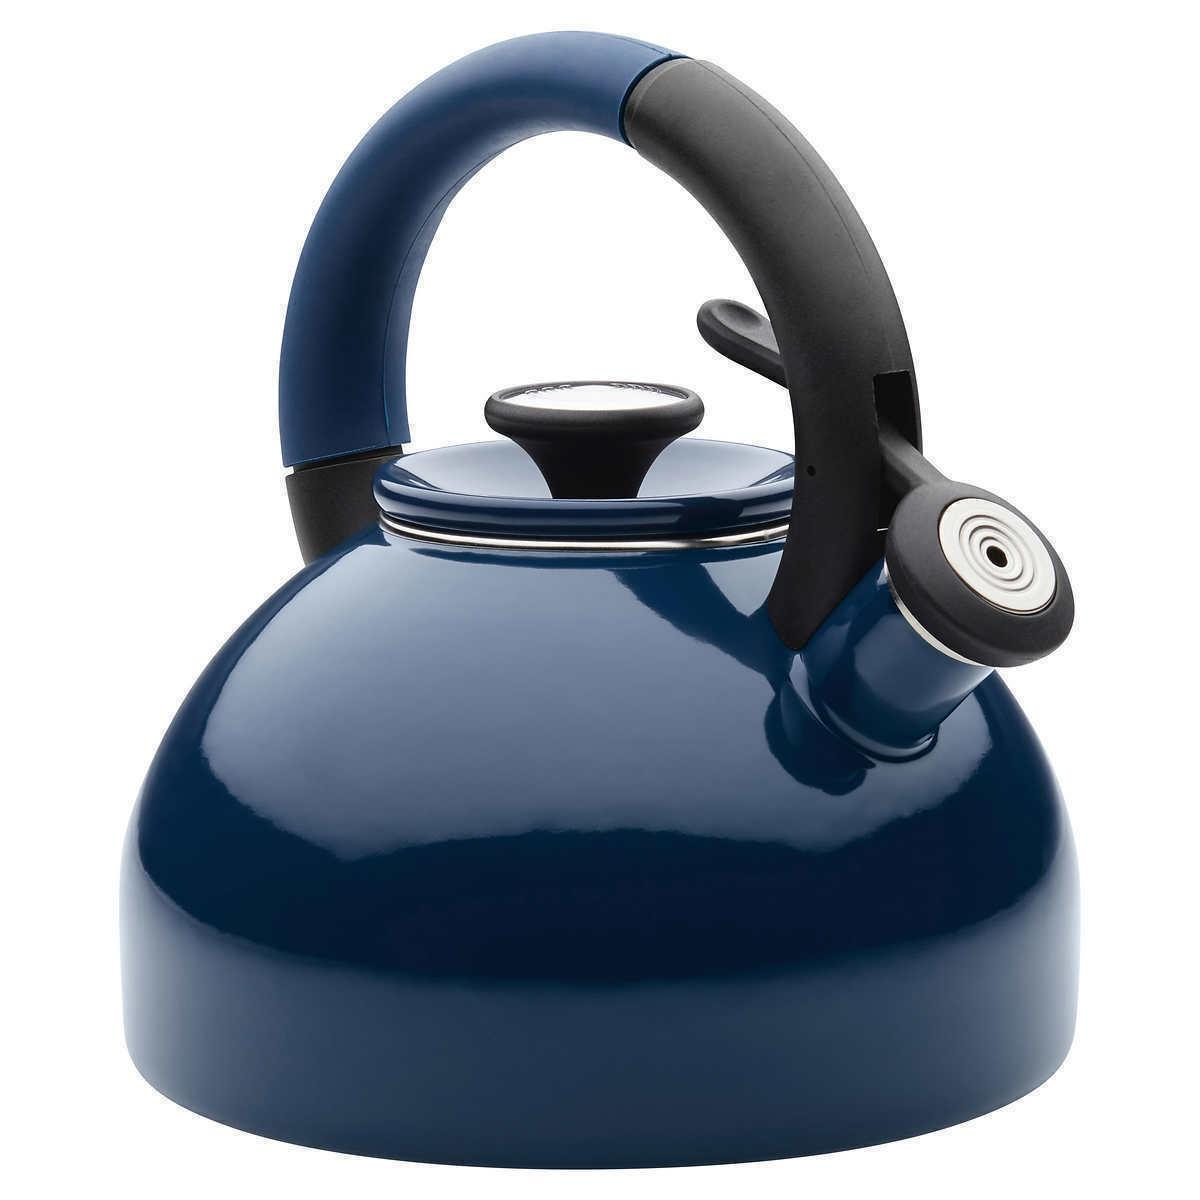 Tea Kettle Induction Whistling